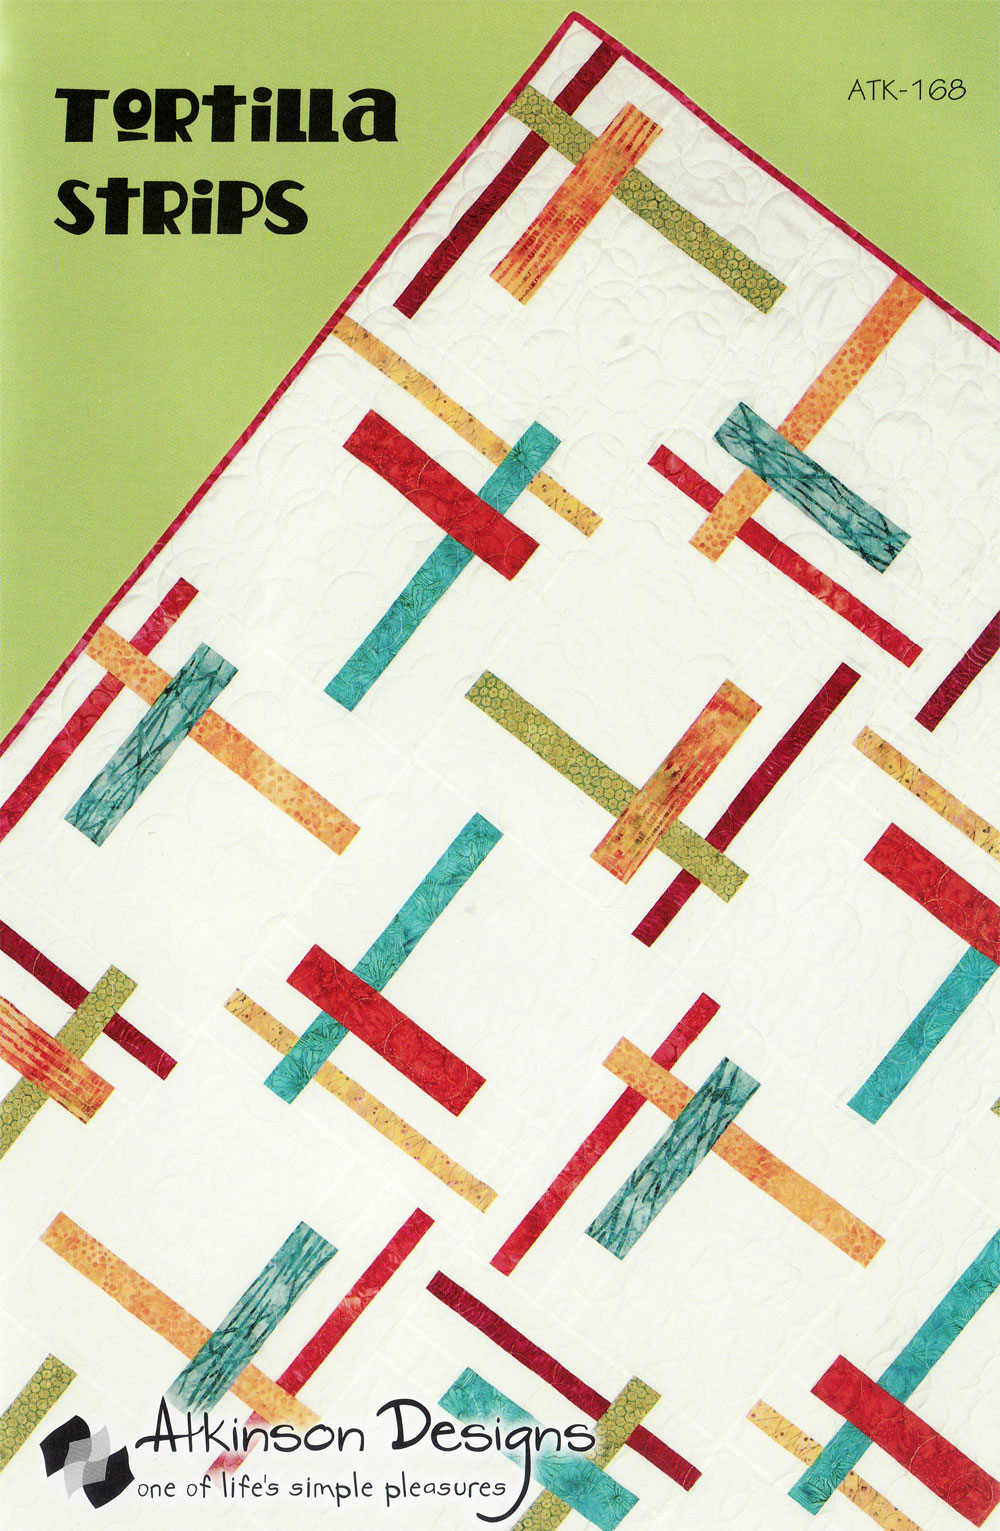 Tortilla-Strips-quilt-sewing-pattern-Atkinson-Designs-front